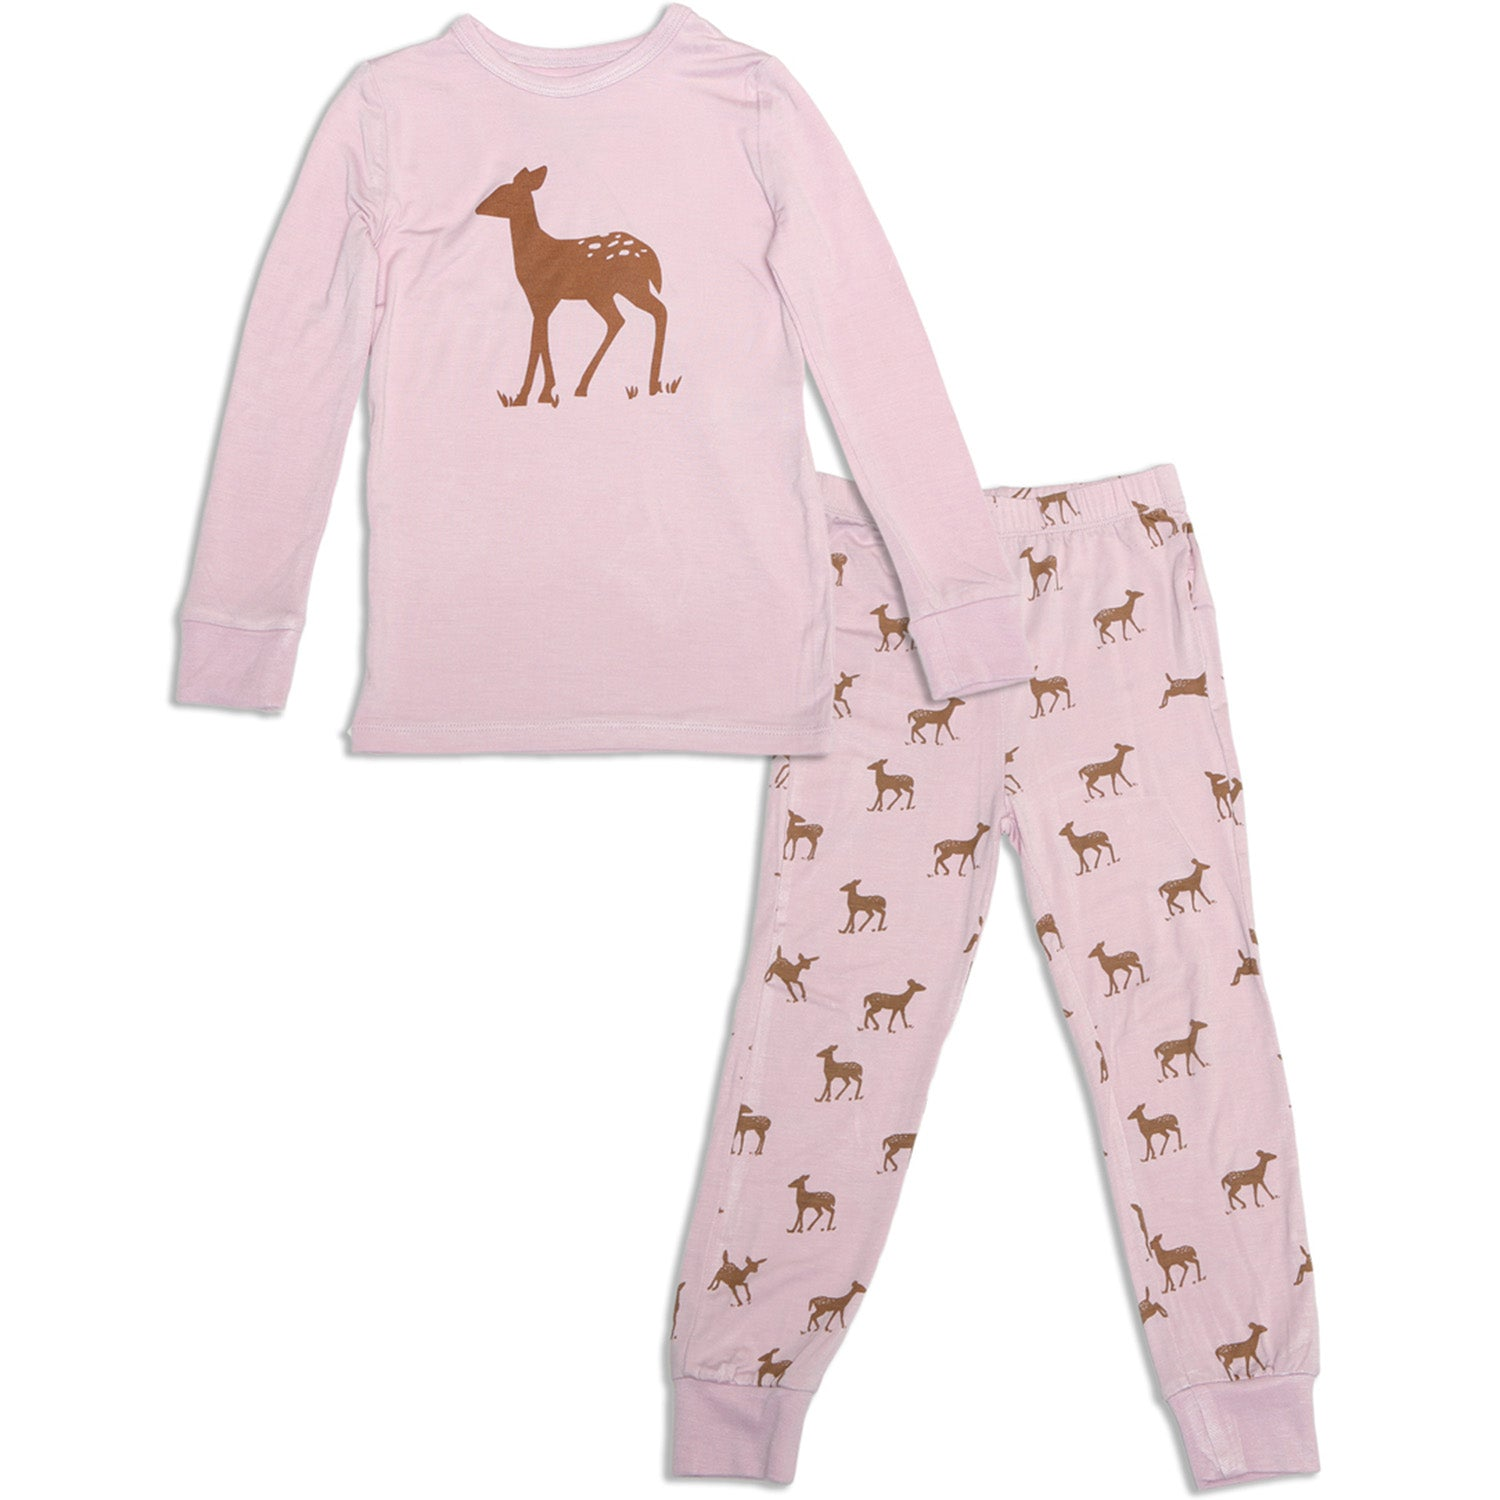 Silkberry Baby Bamboo Long Sleeve Pajama Set - Autumn Deer